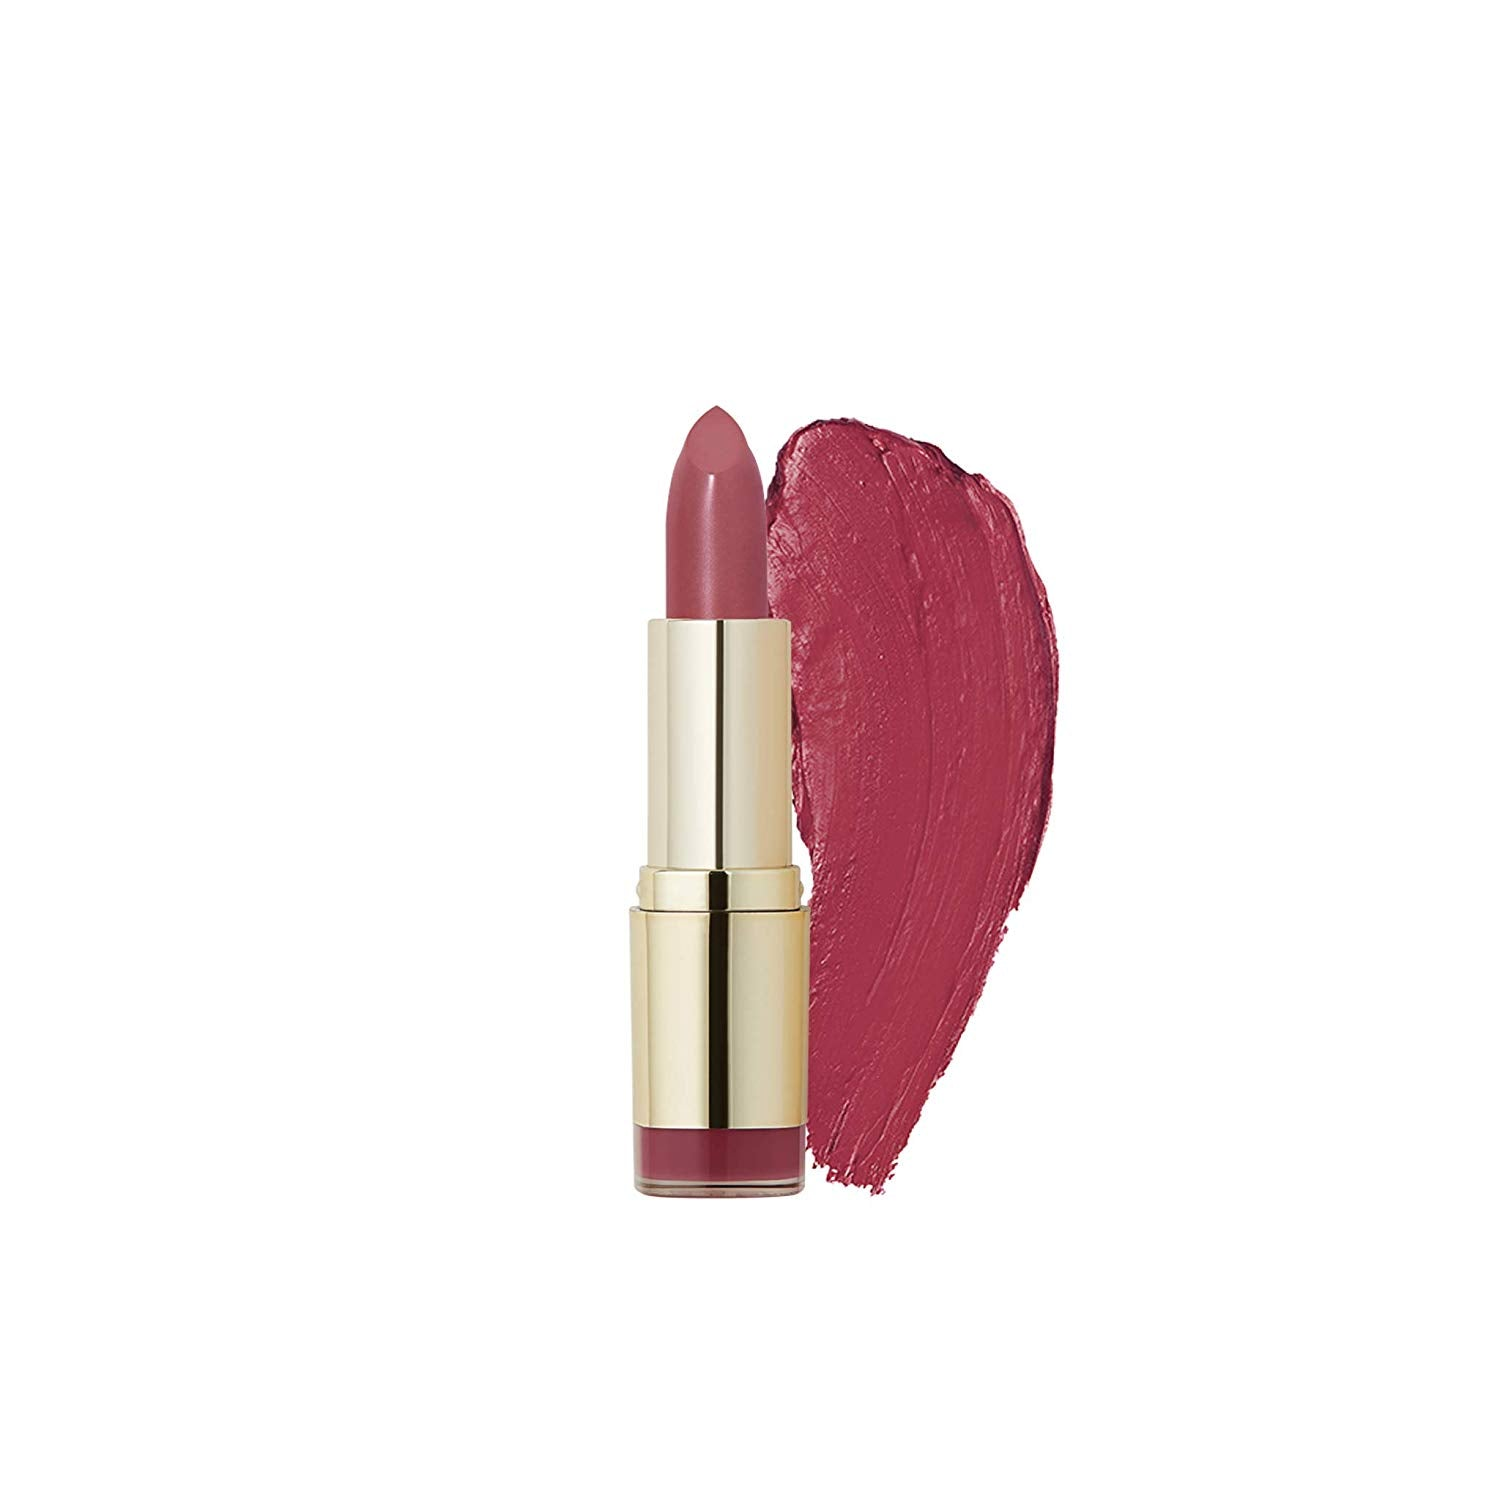 Milani Color Statement Lipstick - Best Red, Cruelty-Free Nourishing Lip Stick in Vibrant Shades,Red Lipstick, 0.14 Ounce